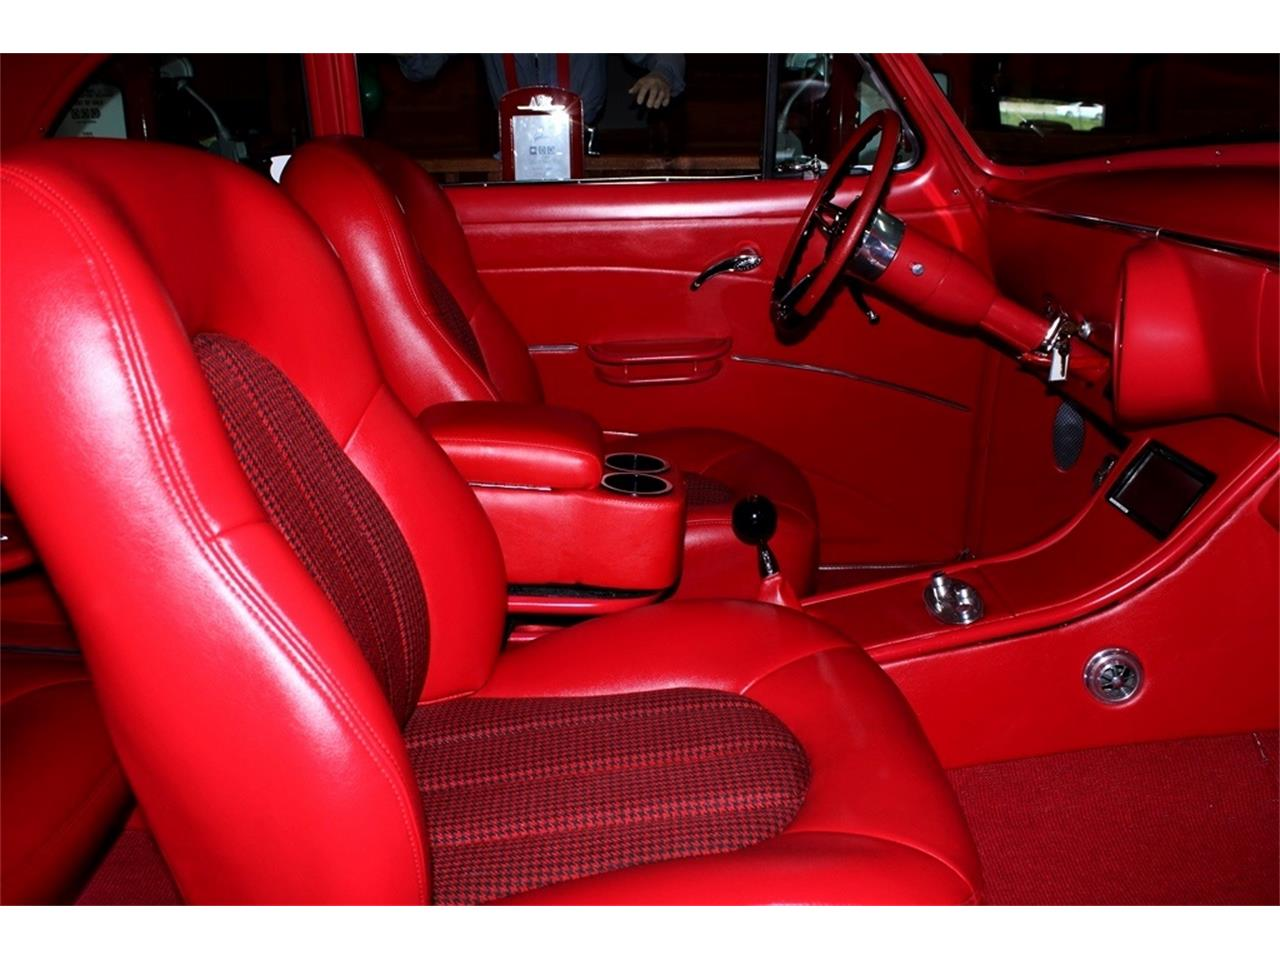 Large Picture of Classic '50 Styleline Deluxe - $79,900.00 Offered by A&E Classic Cars - QQK1